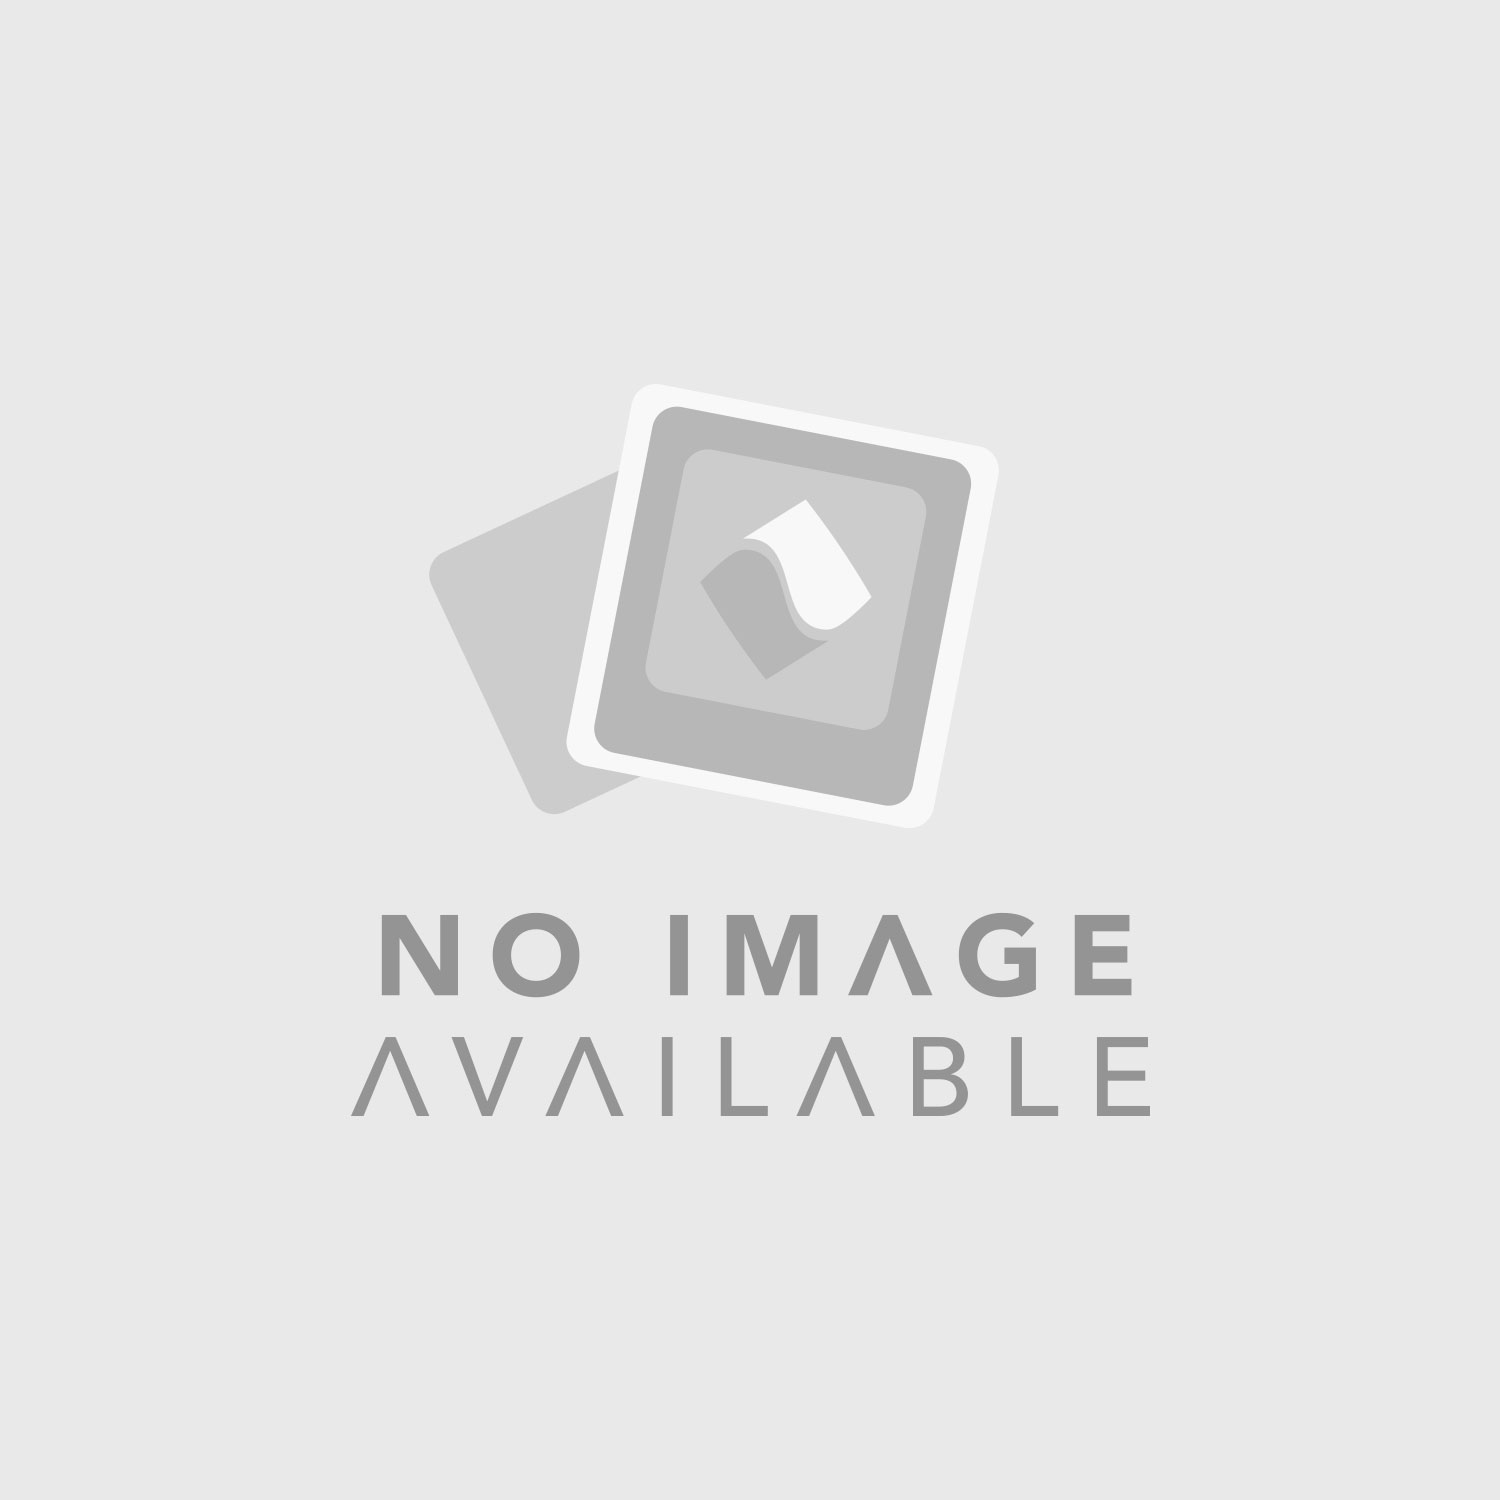 SKB 5FC-1914-8 Replacement Cubed Foam for 3i-1914-8-Series Cases